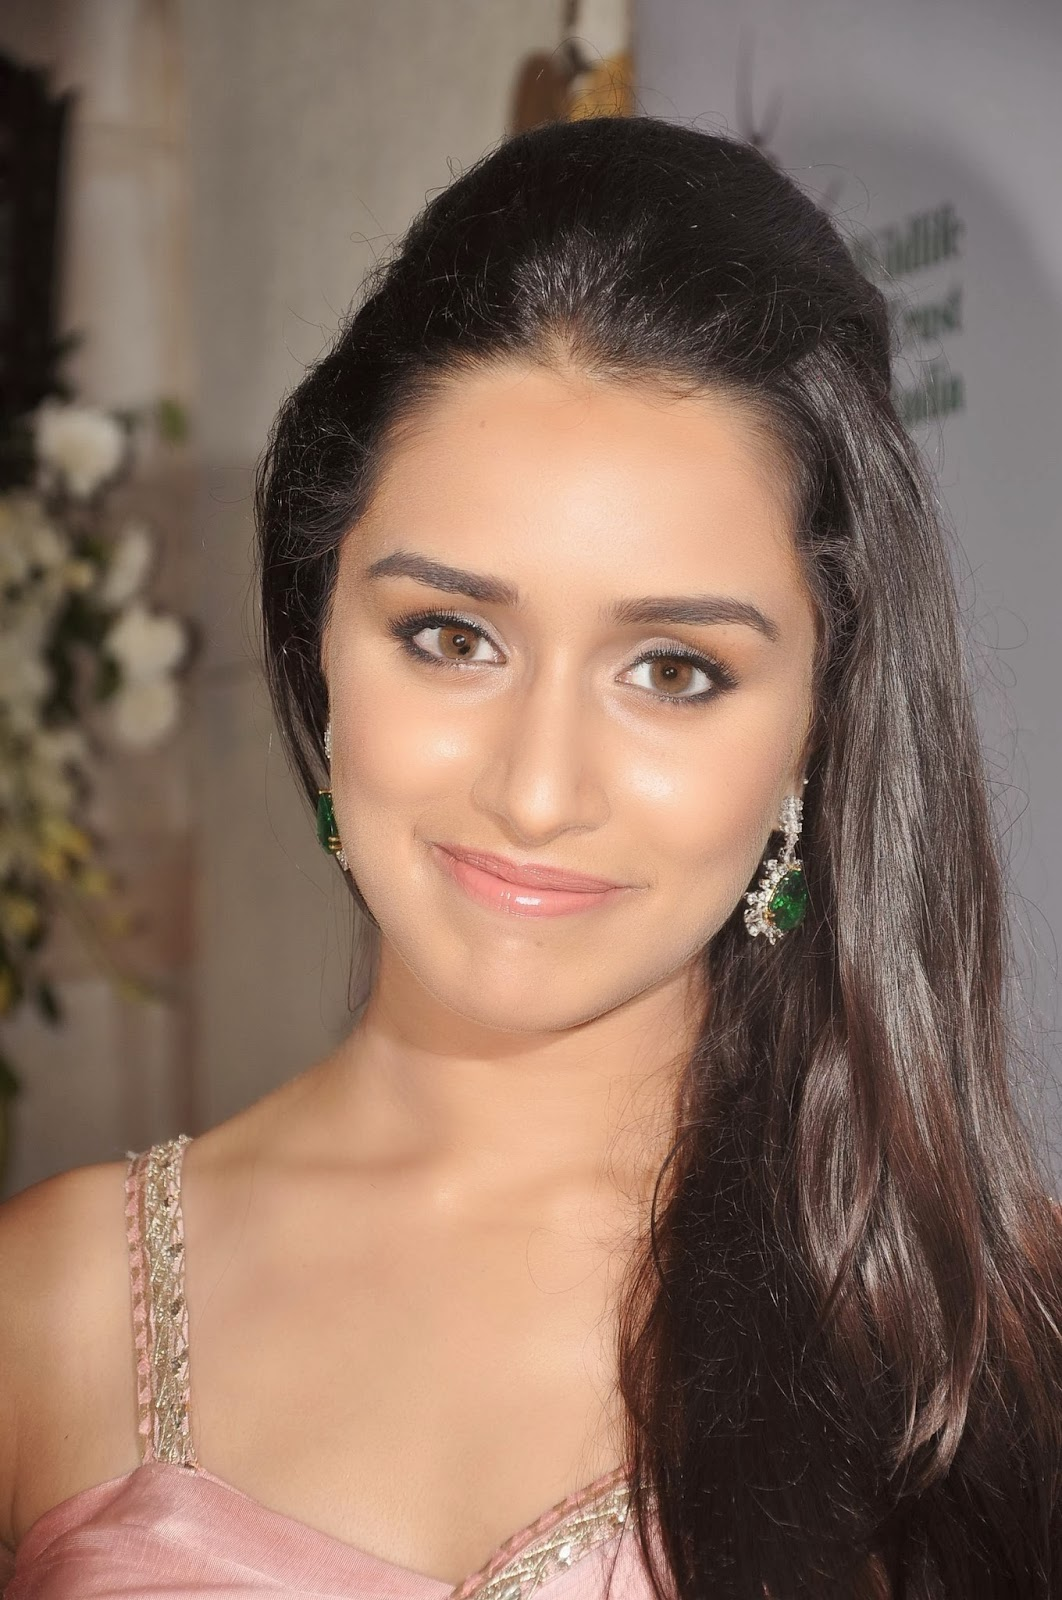 Shraddha+Kapoor+Latest+Hot+Spicy+Pictures007